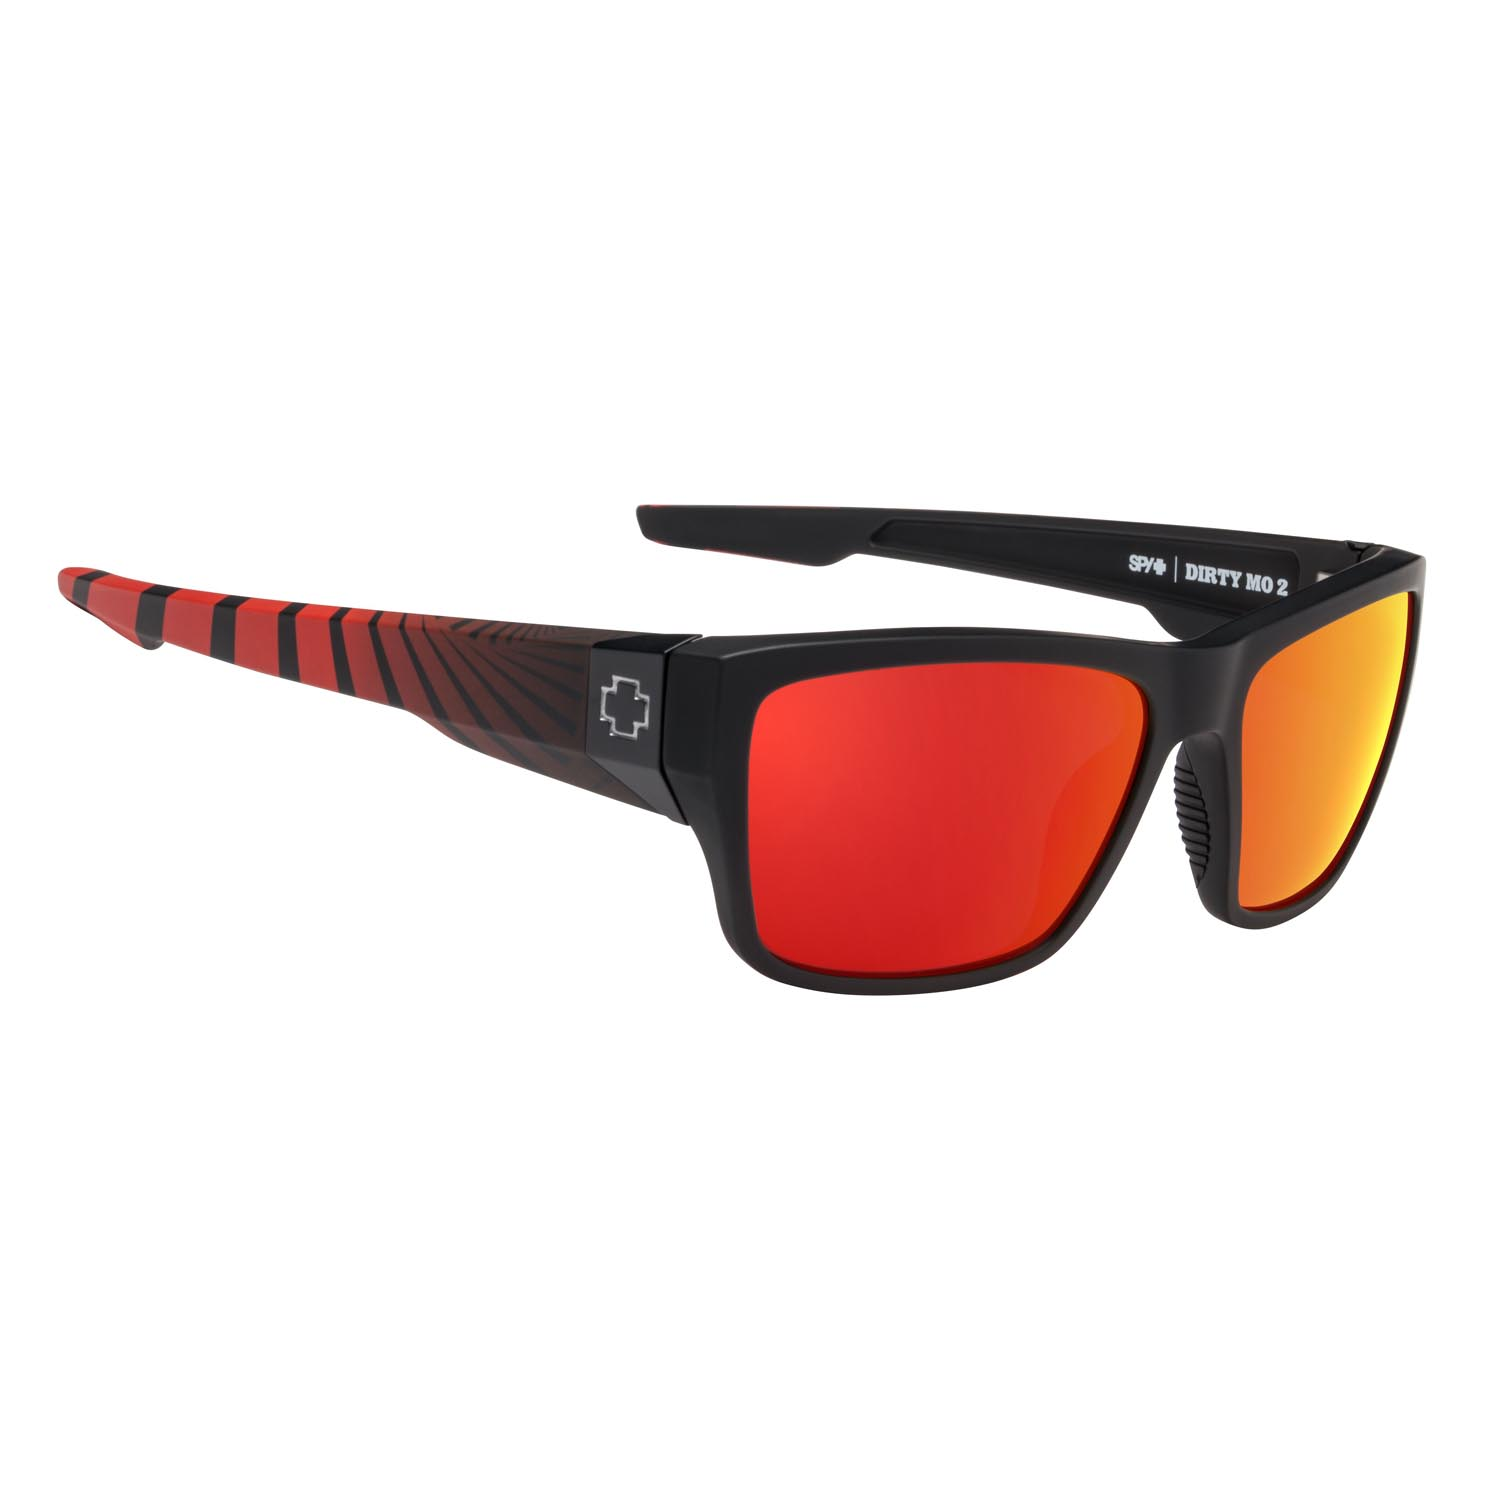 Spy Sunglasses Dirty Mo 2 in matte black red burst with red spectra polarized lenses